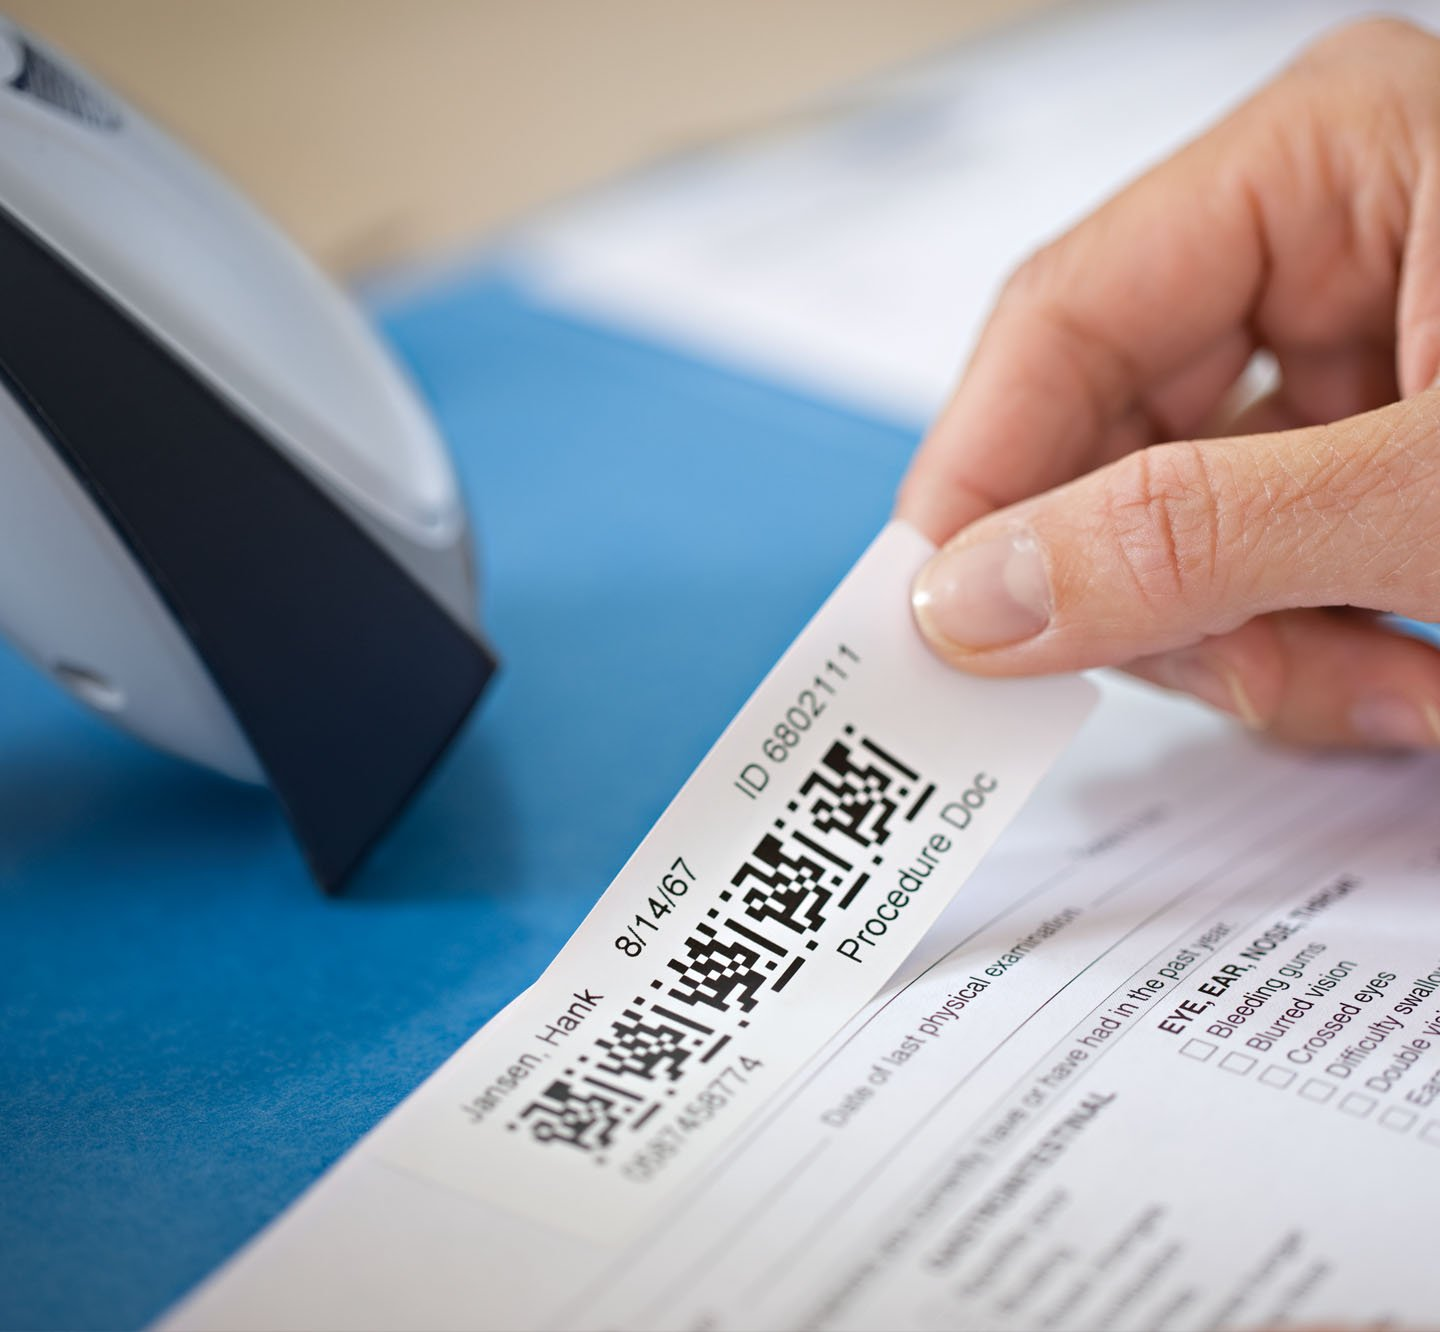 A hand applying a Q R code label to a document.